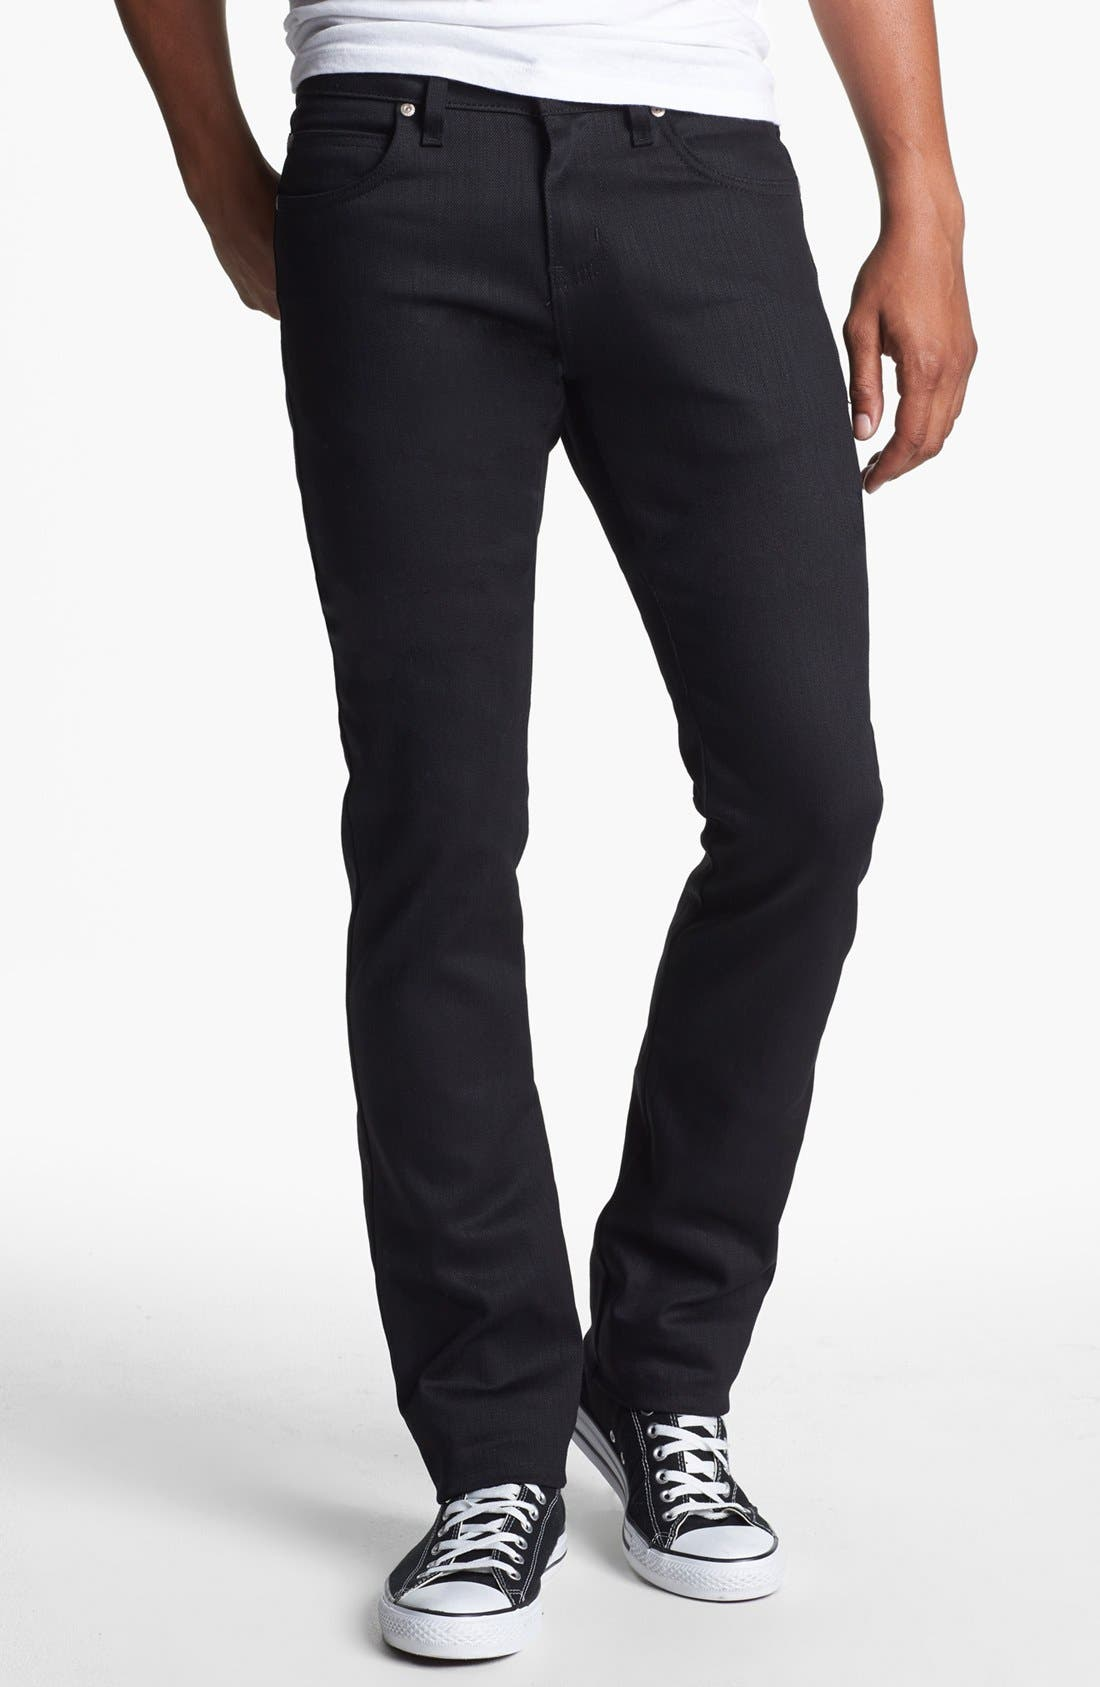 Alternate Image 1 Selected - Naked & Famous Denim Skinny Guy Skinny Fit Jeans (Black Power Stretch)